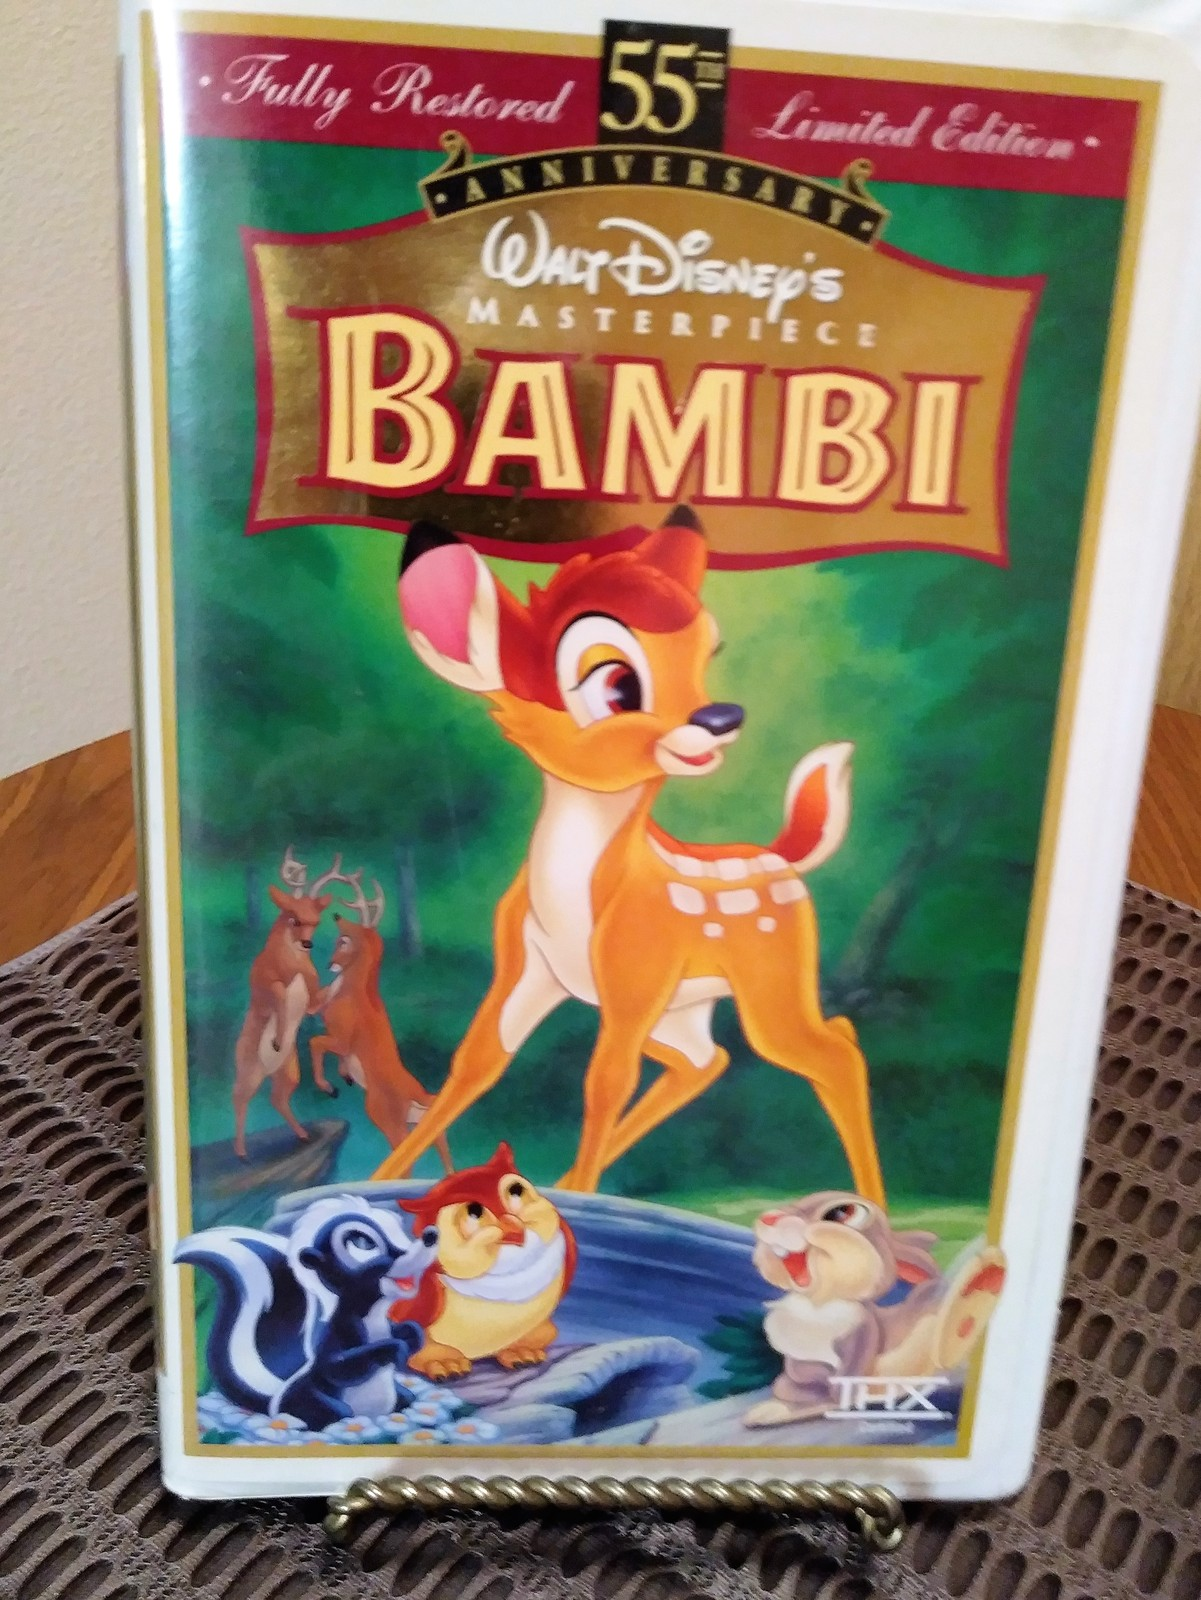 Walt Disney Masterpiece Bambi 55th Anniversary Limited Edition Fully Restored VH